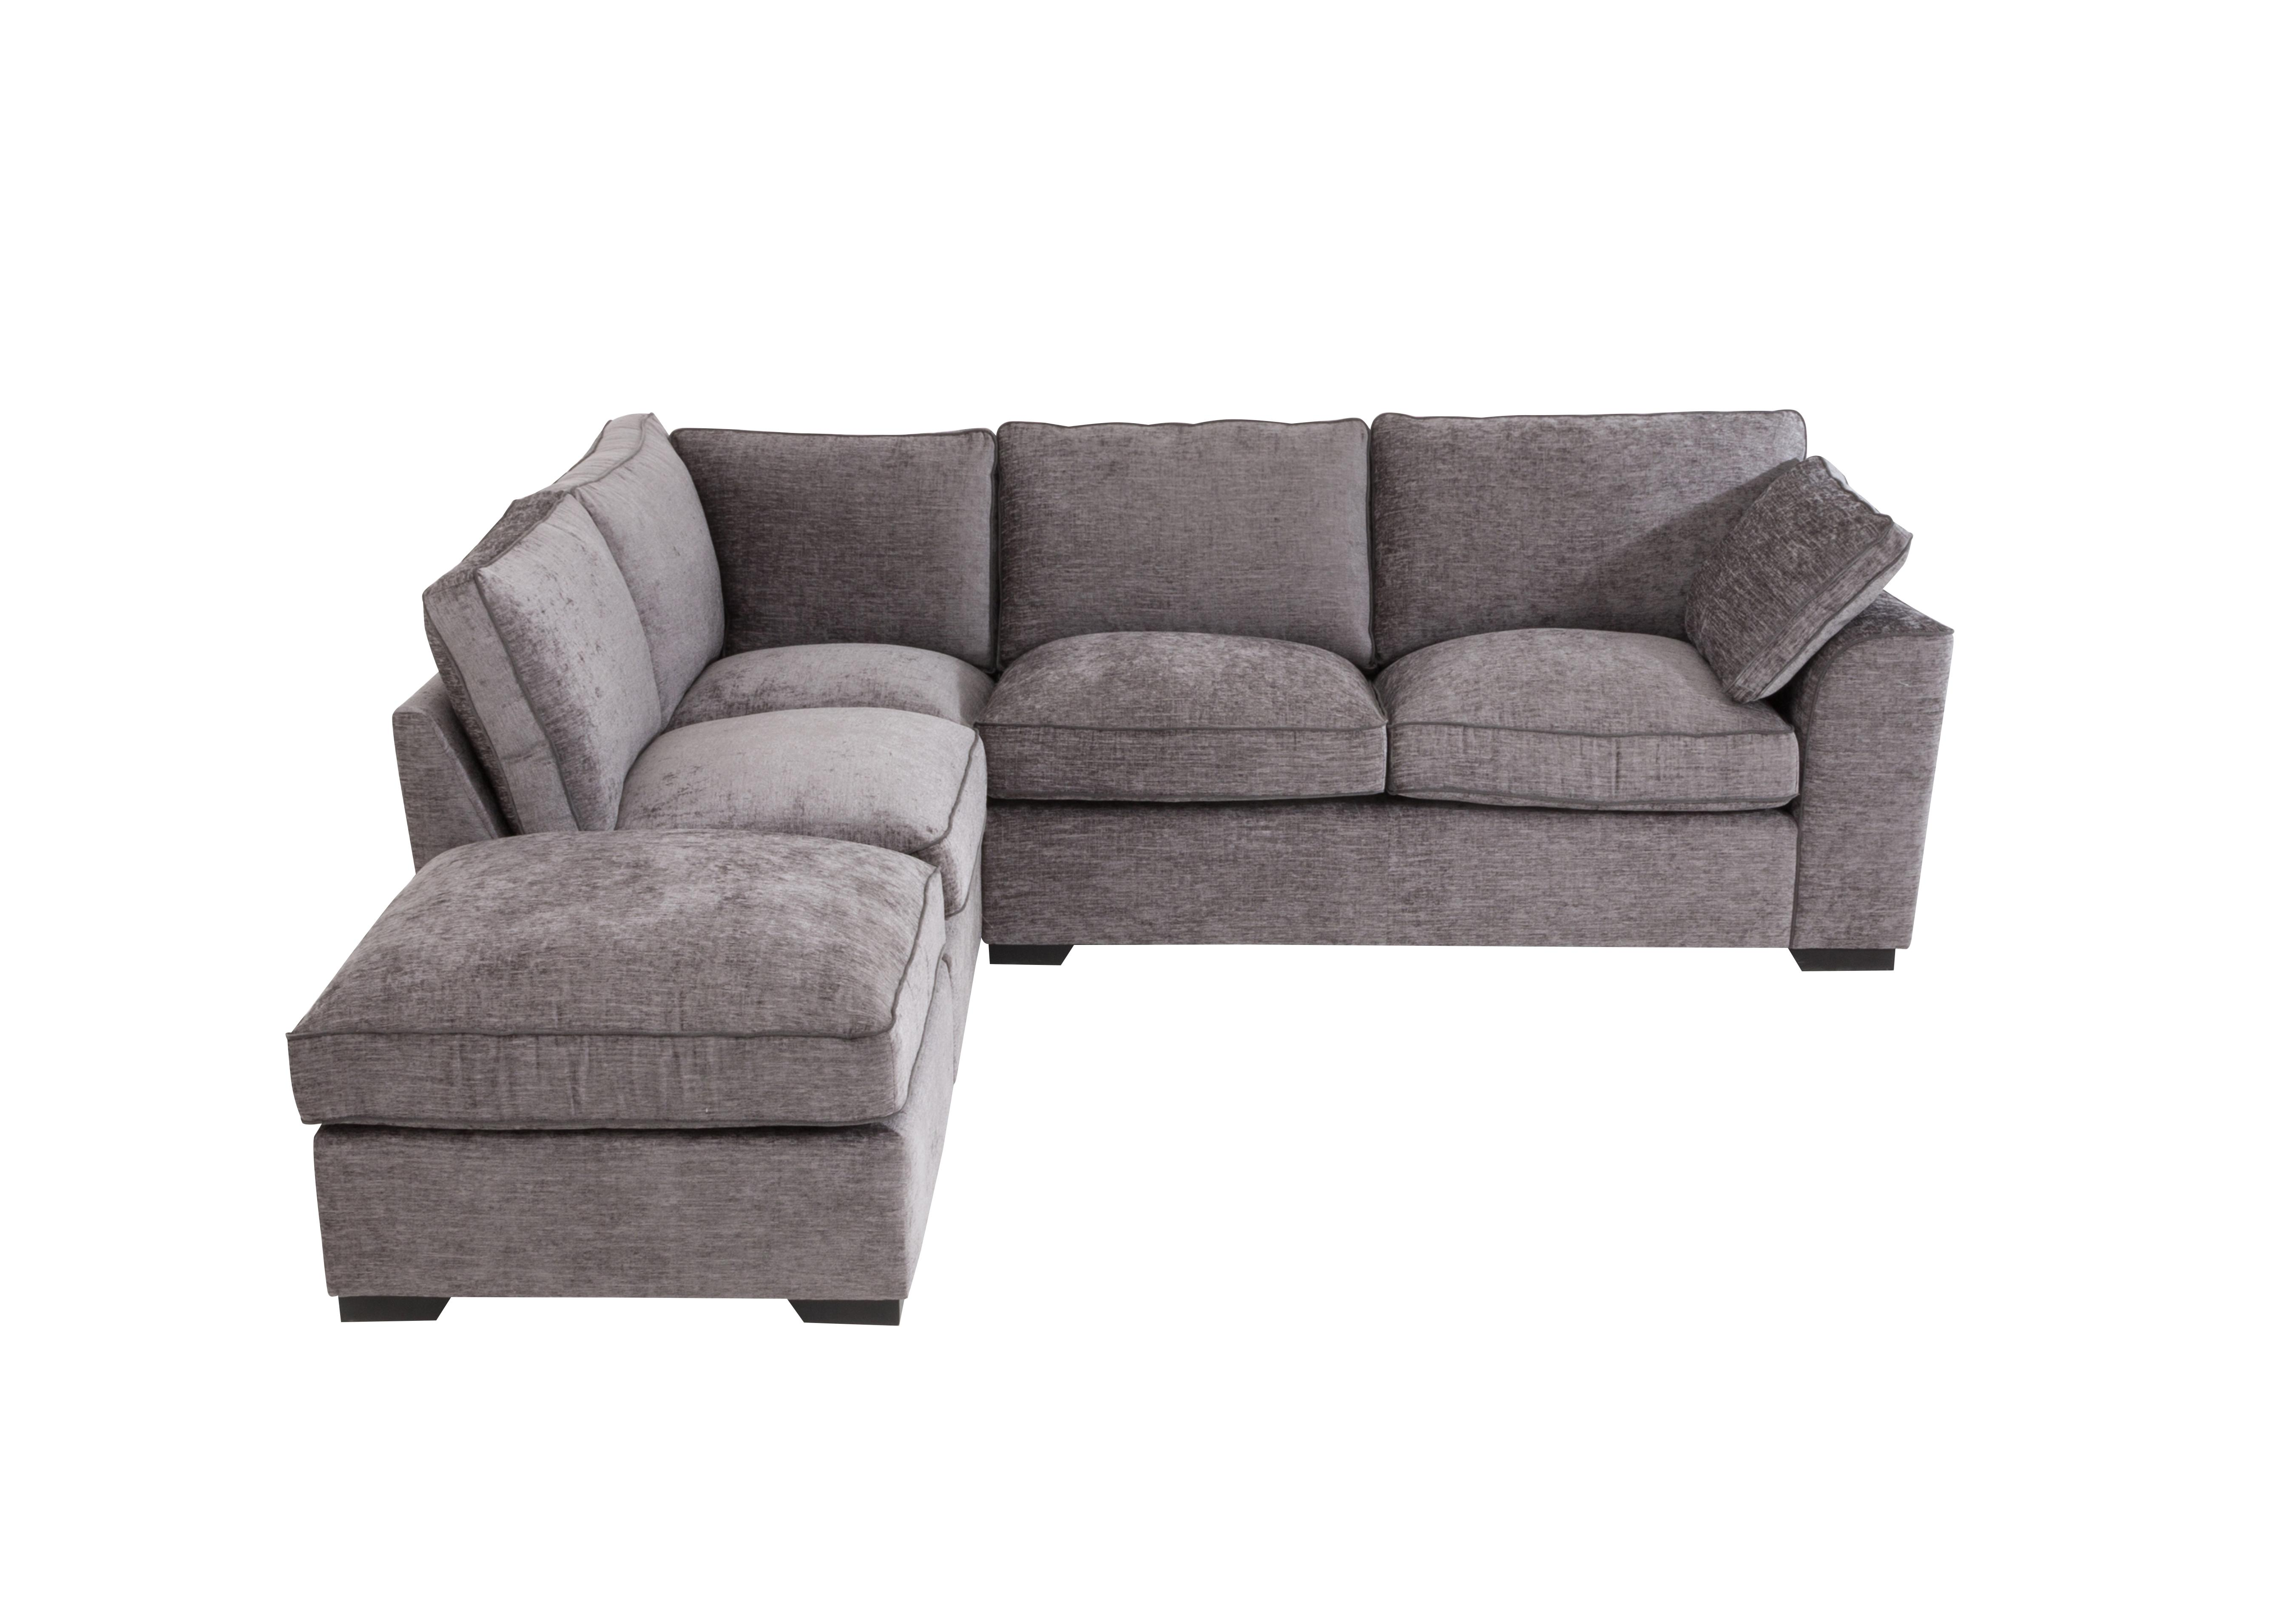 Online Looking For Couch Beds